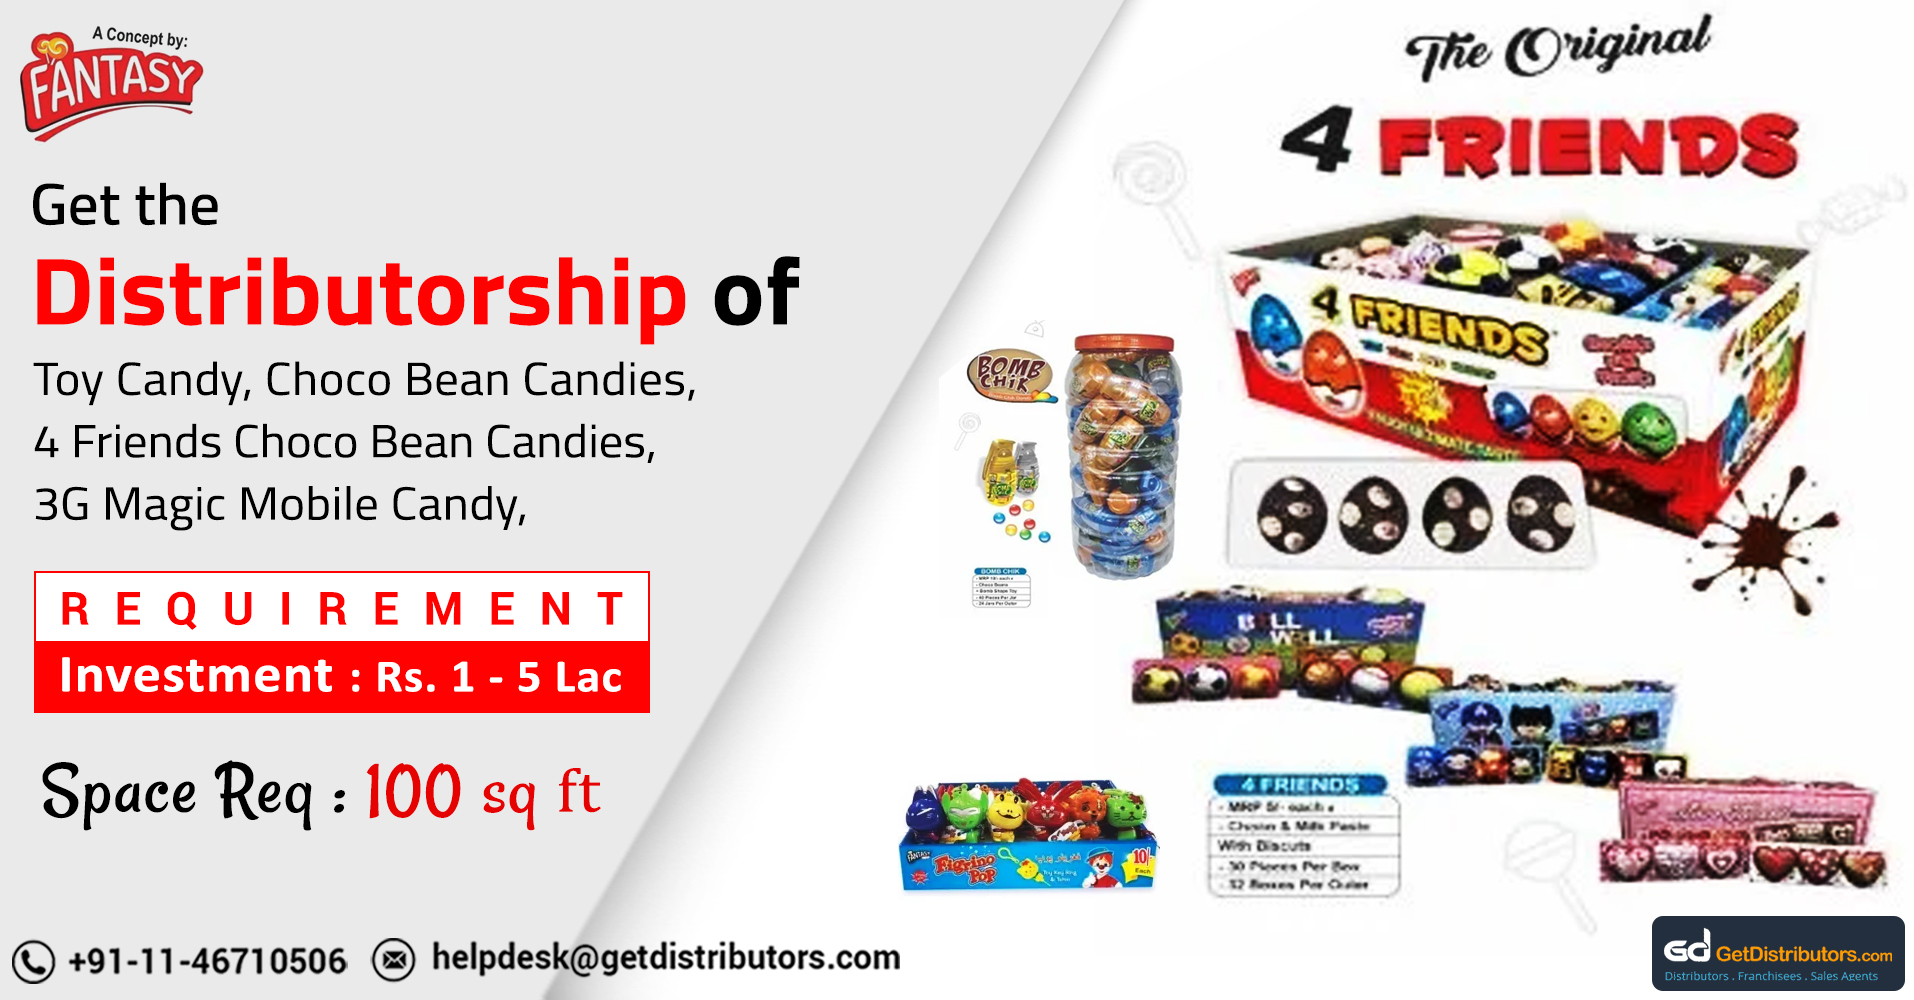 Delectable Range Of Candies In Different Sizes, Color, And Attractive Shapes